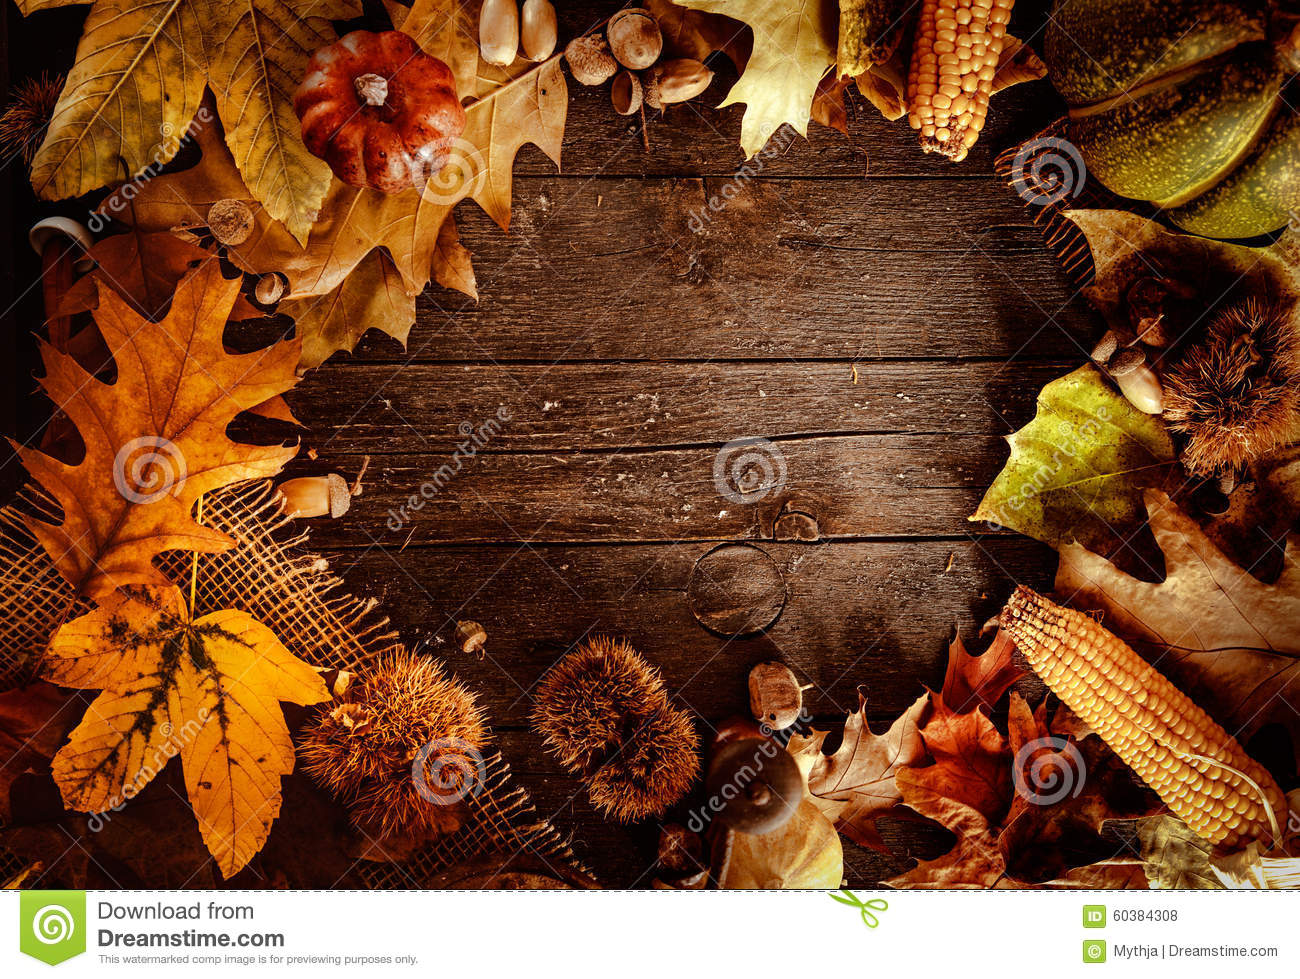 Fall Season Wallpaper Free Thanksgiving Dinner Stock Photo Image Of Fresh Fruit